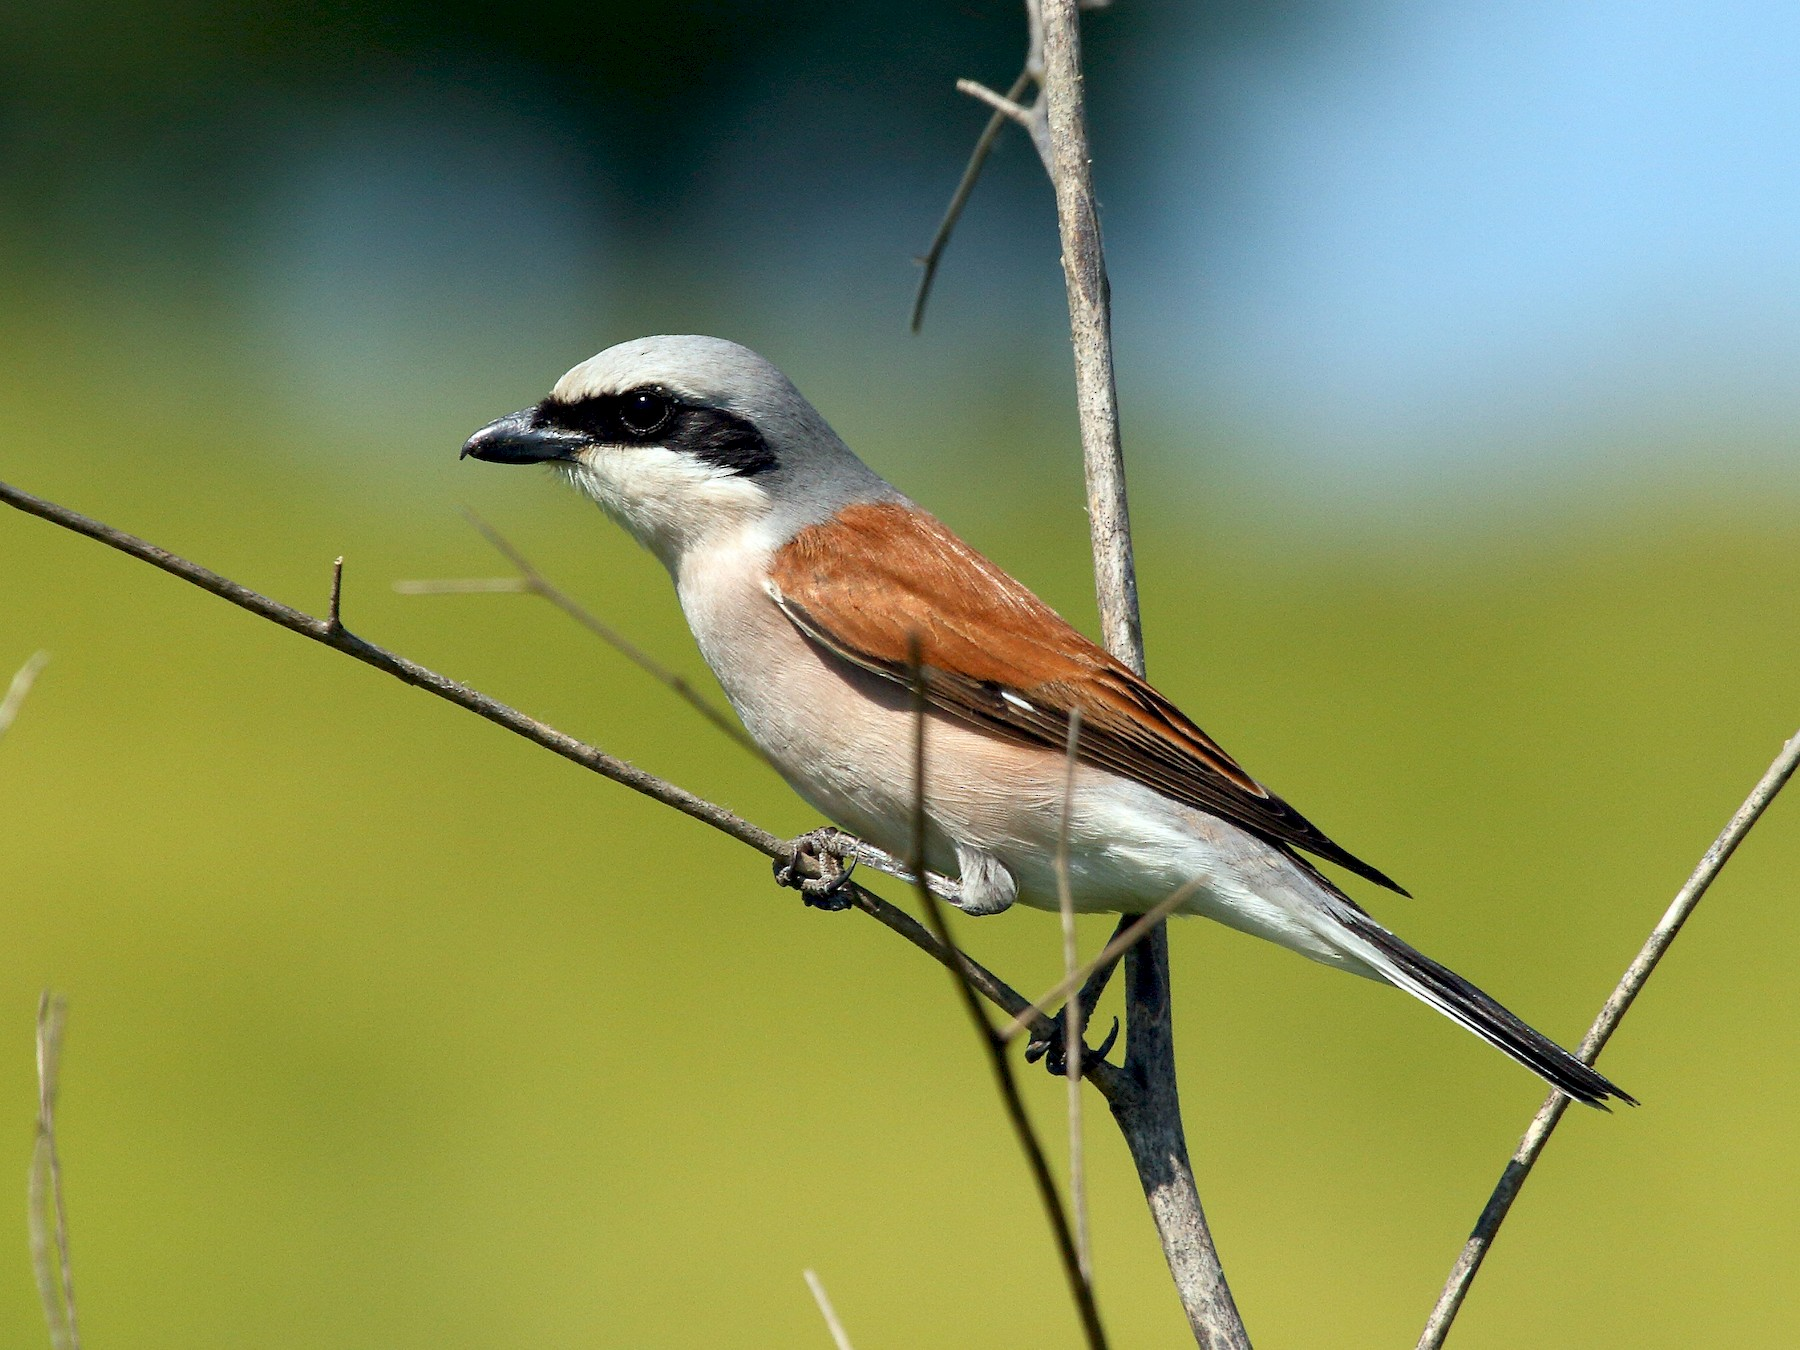 Red-backed Shrike - Patrick J. Blake